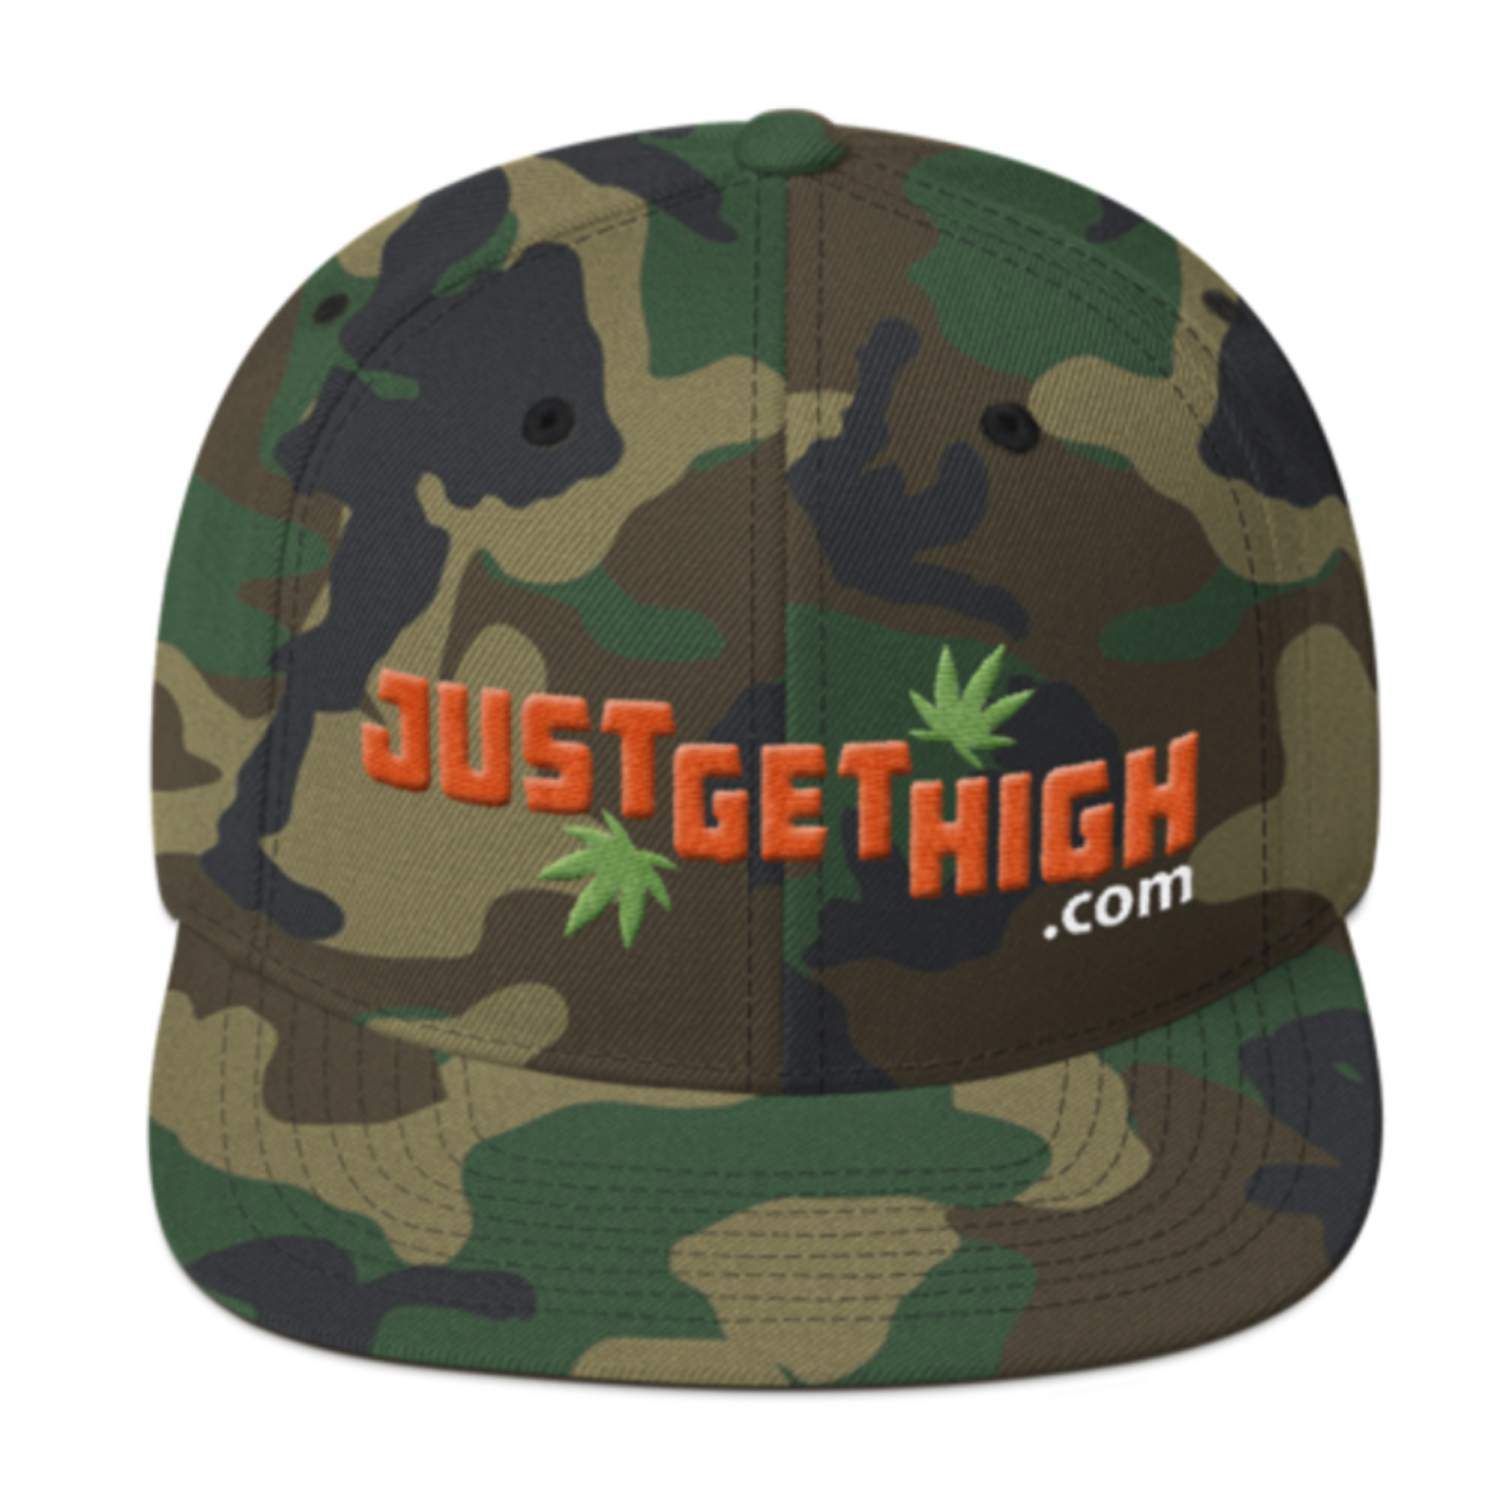 JGH_hat camo with orange